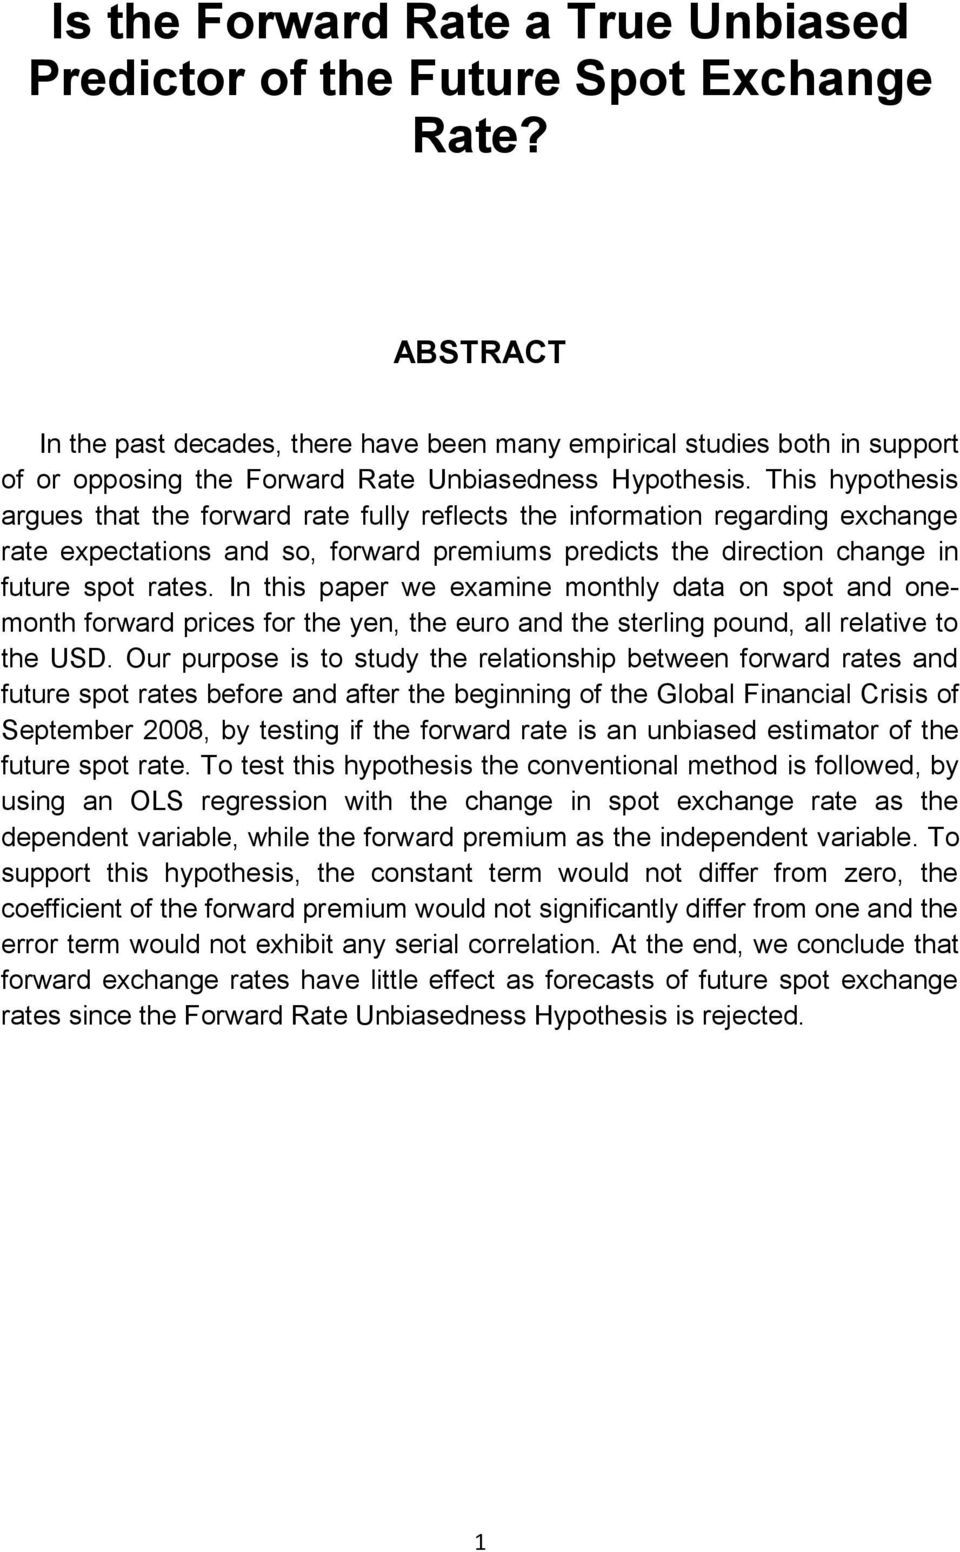 This hypothesis argues that the forward rate fully reflects the information regarding exchange rate expectations and so, forward premiums predicts the direction change in future spot rates.